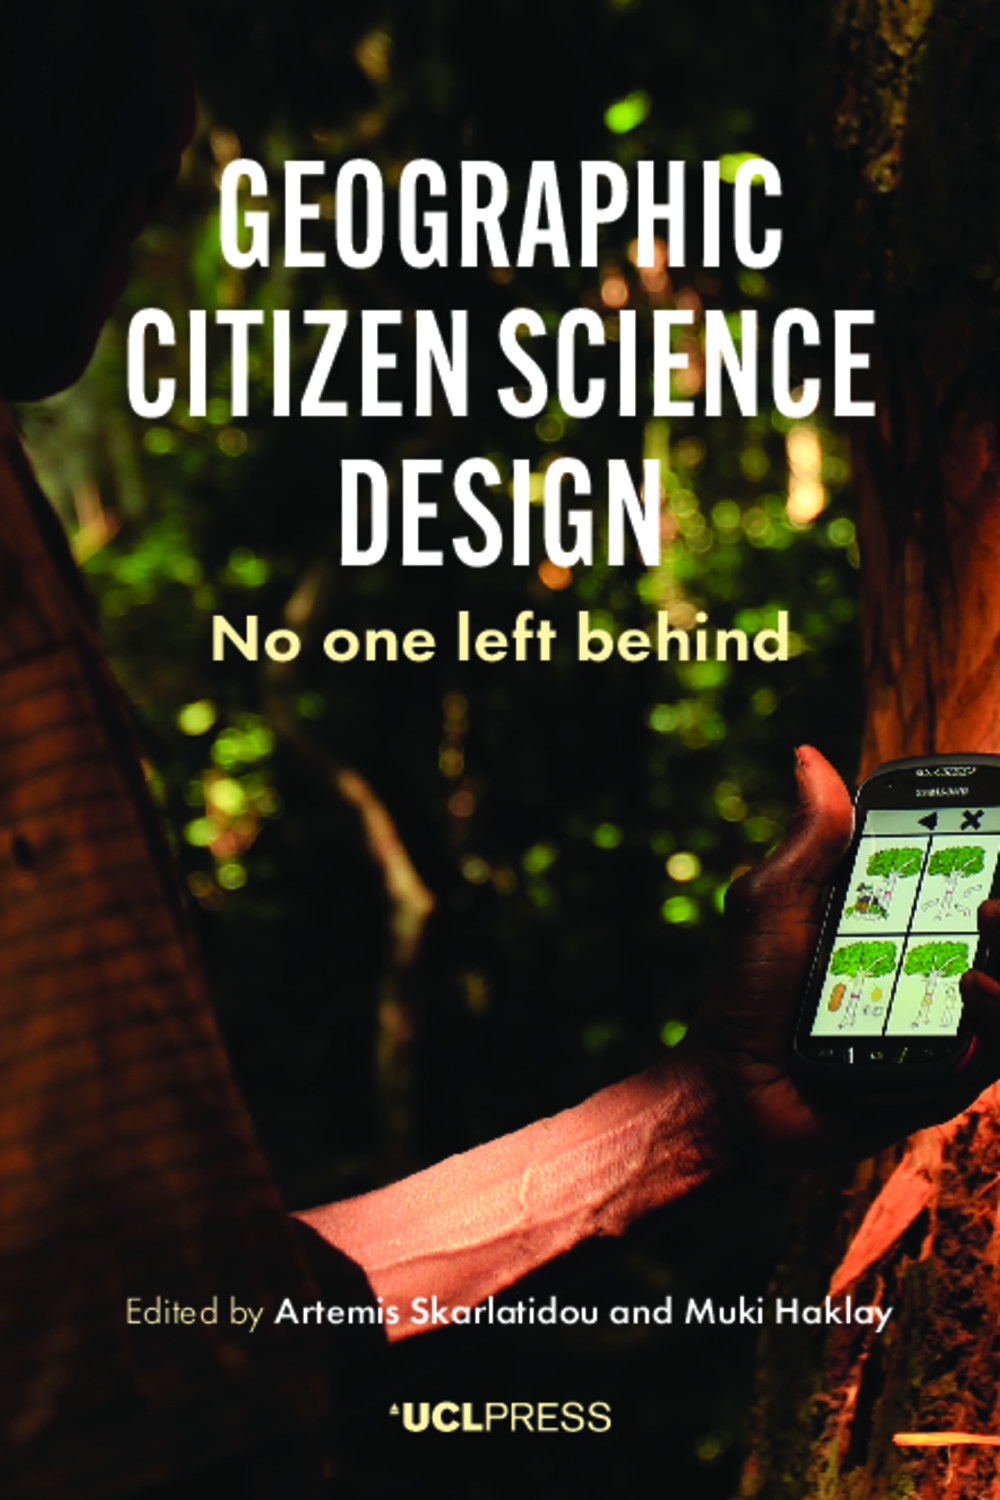 Geographic Citizen Science Design